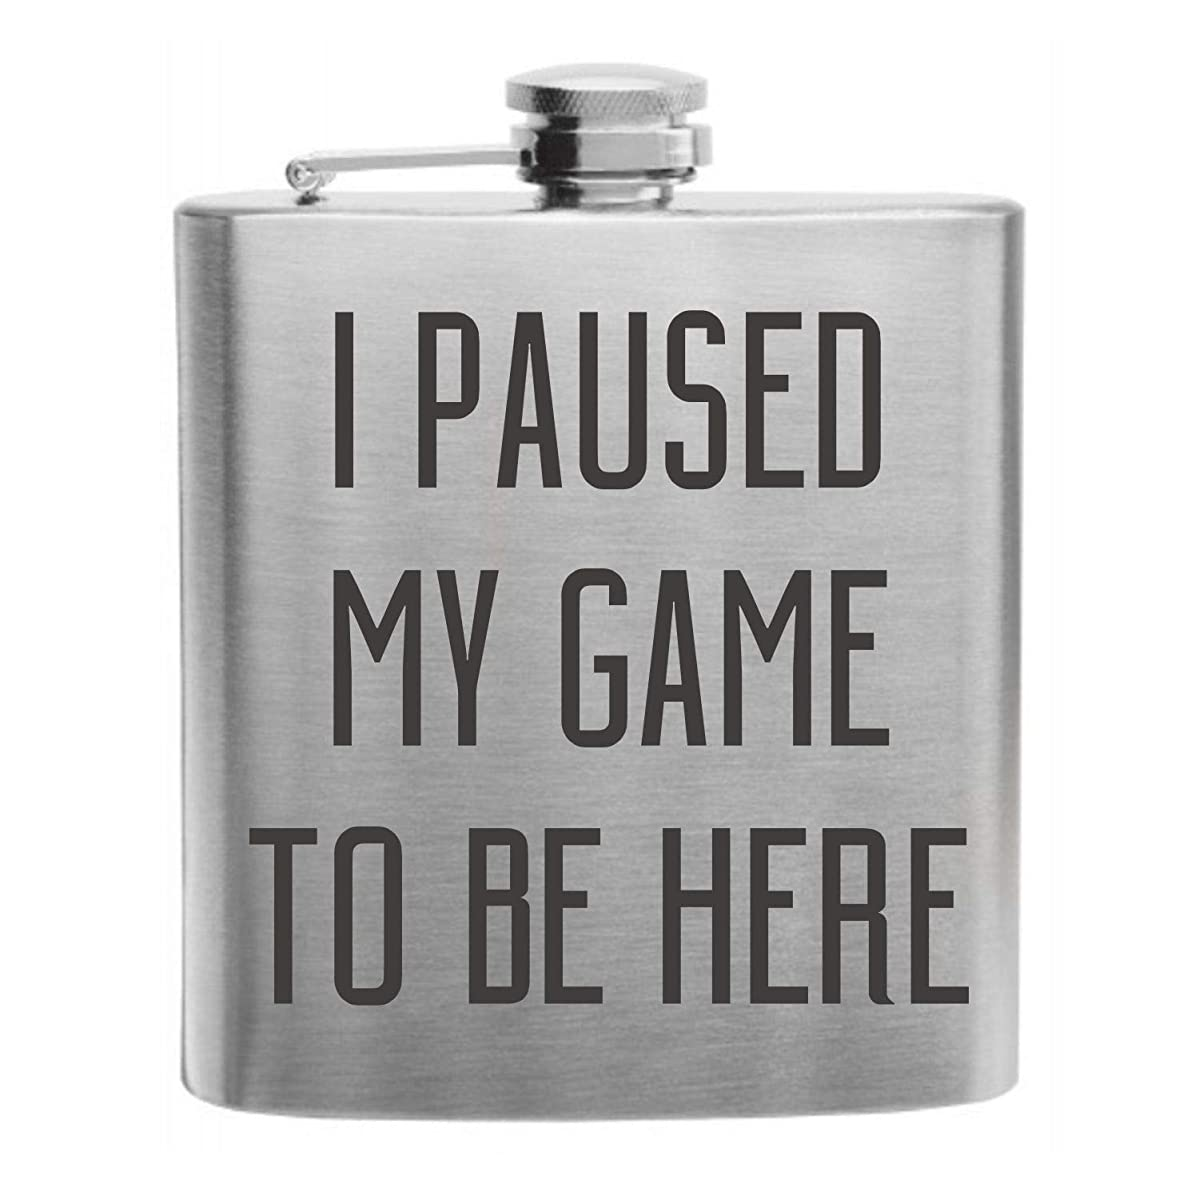 I Paused My Game to Be Here Funny Gaming Design Custom Printed Stainless Steel Alcohol Hip Flask, 6 Oz. Stainless Steel